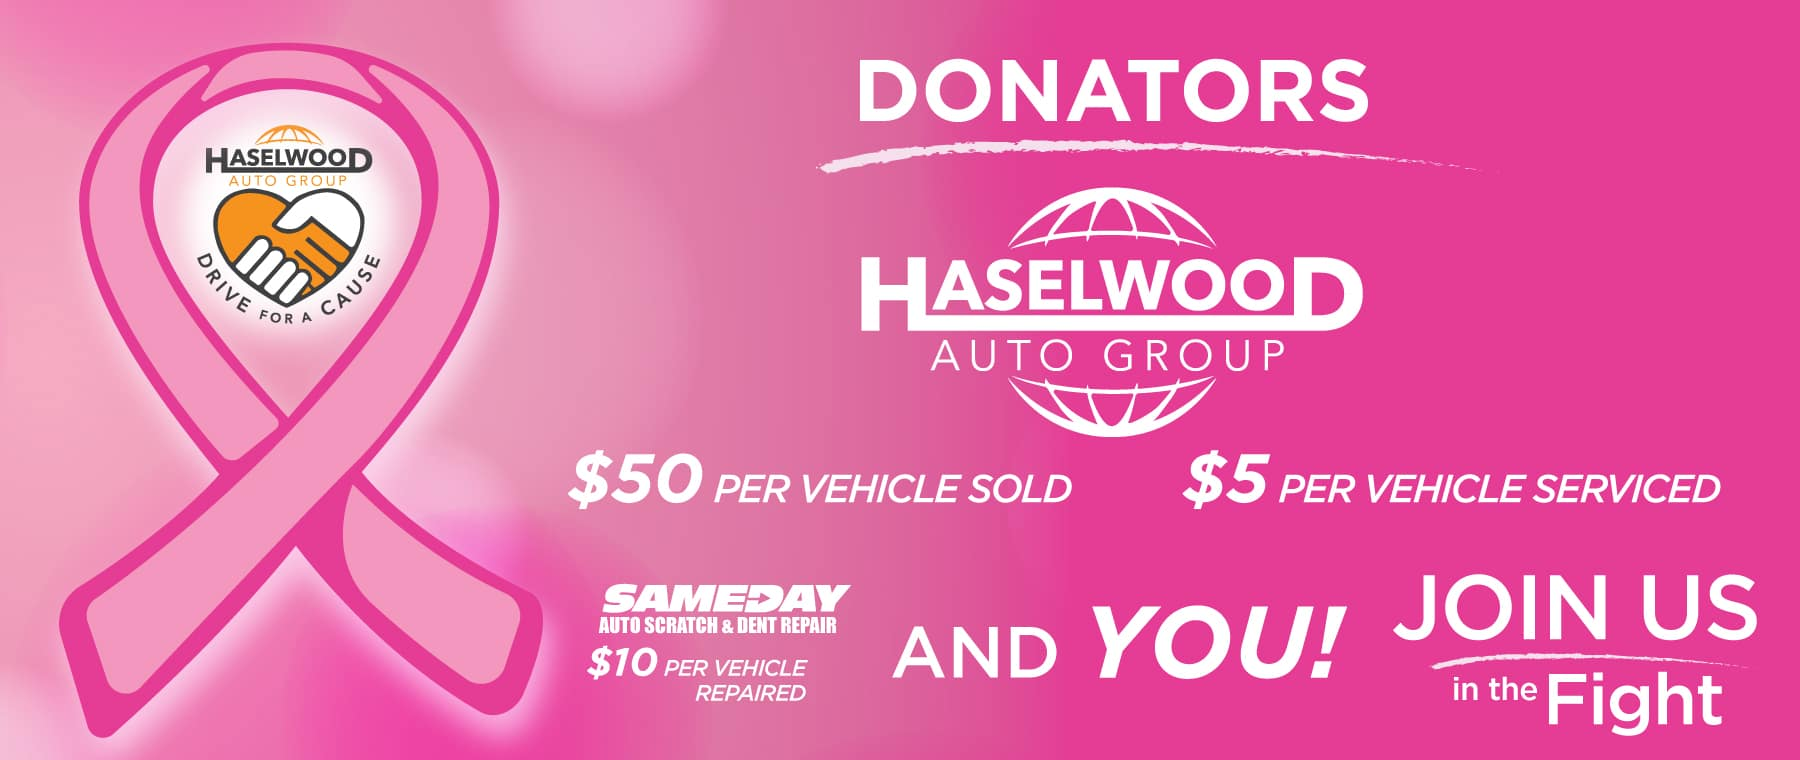 [1] Between 10/01/18-10/31/18, Haselwood Auto Group will donate $50 from every vehicle sold, and $5 from every service repair to the Fred Hutchinson Cancer Research Center.  100% of the contributed funds, including any donations collected from SameDay Scratch & Dent Repair, customers and other individuals, will be donated to Fred Hutch to help them win their fight against breast cancer, and other forms of cancer.